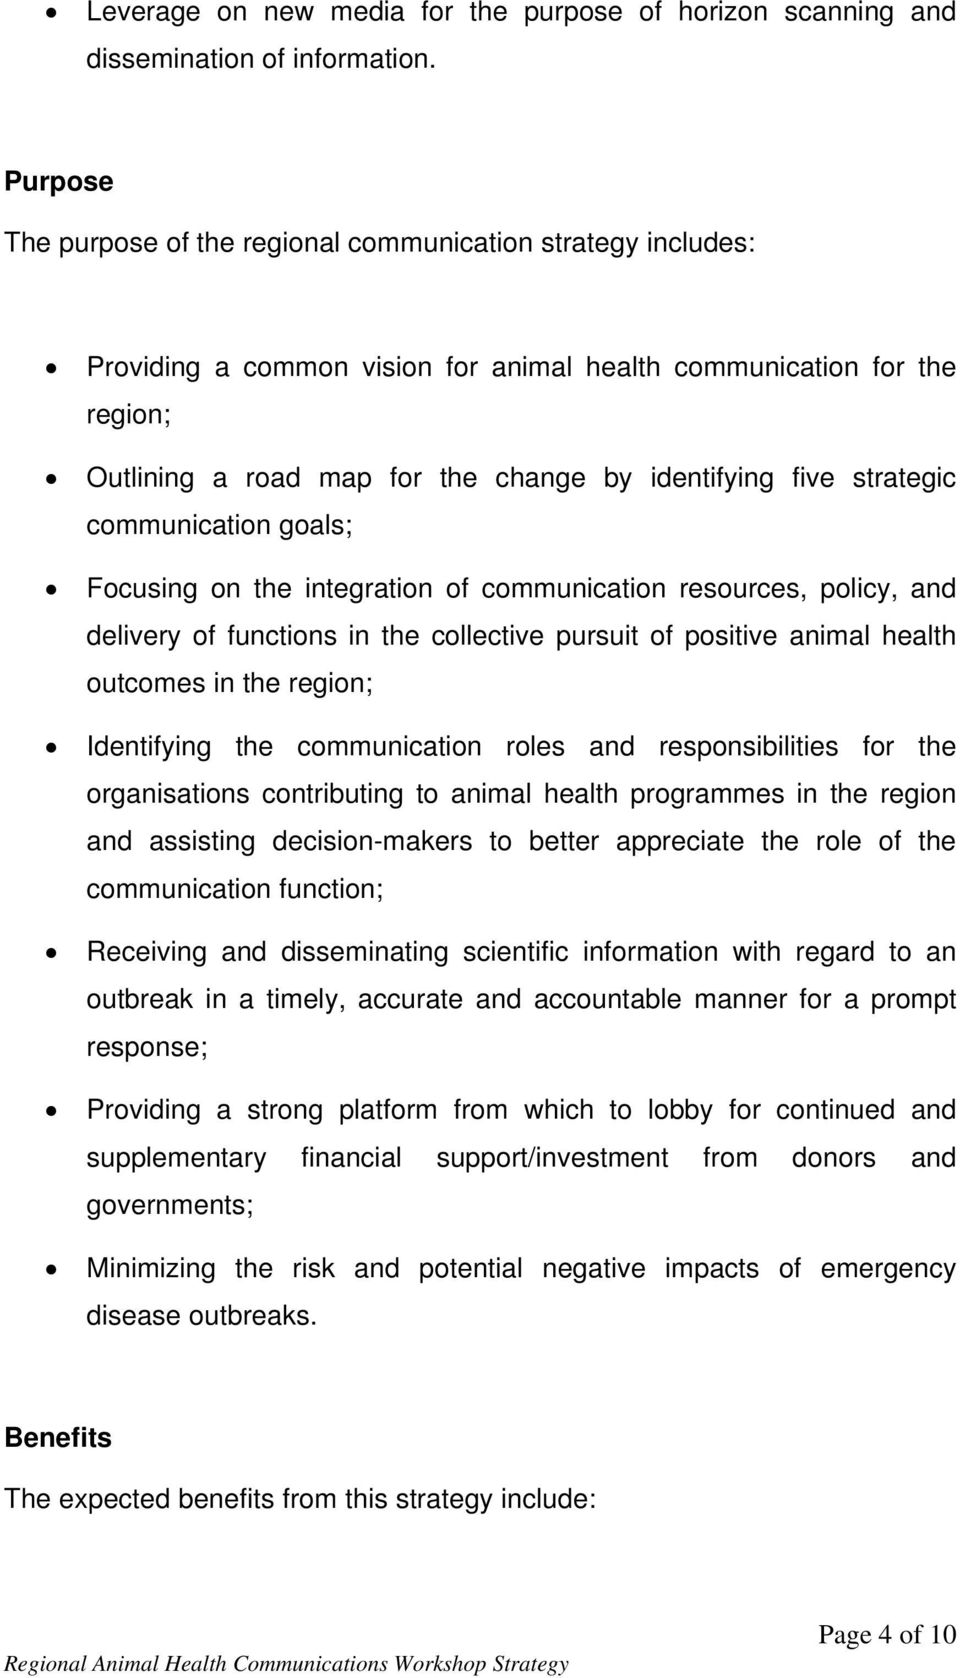 strategic communication goals; Focusing on the integration of communication resources, policy, and delivery of functions in the collective pursuit of positive animal health outcomes in the region;